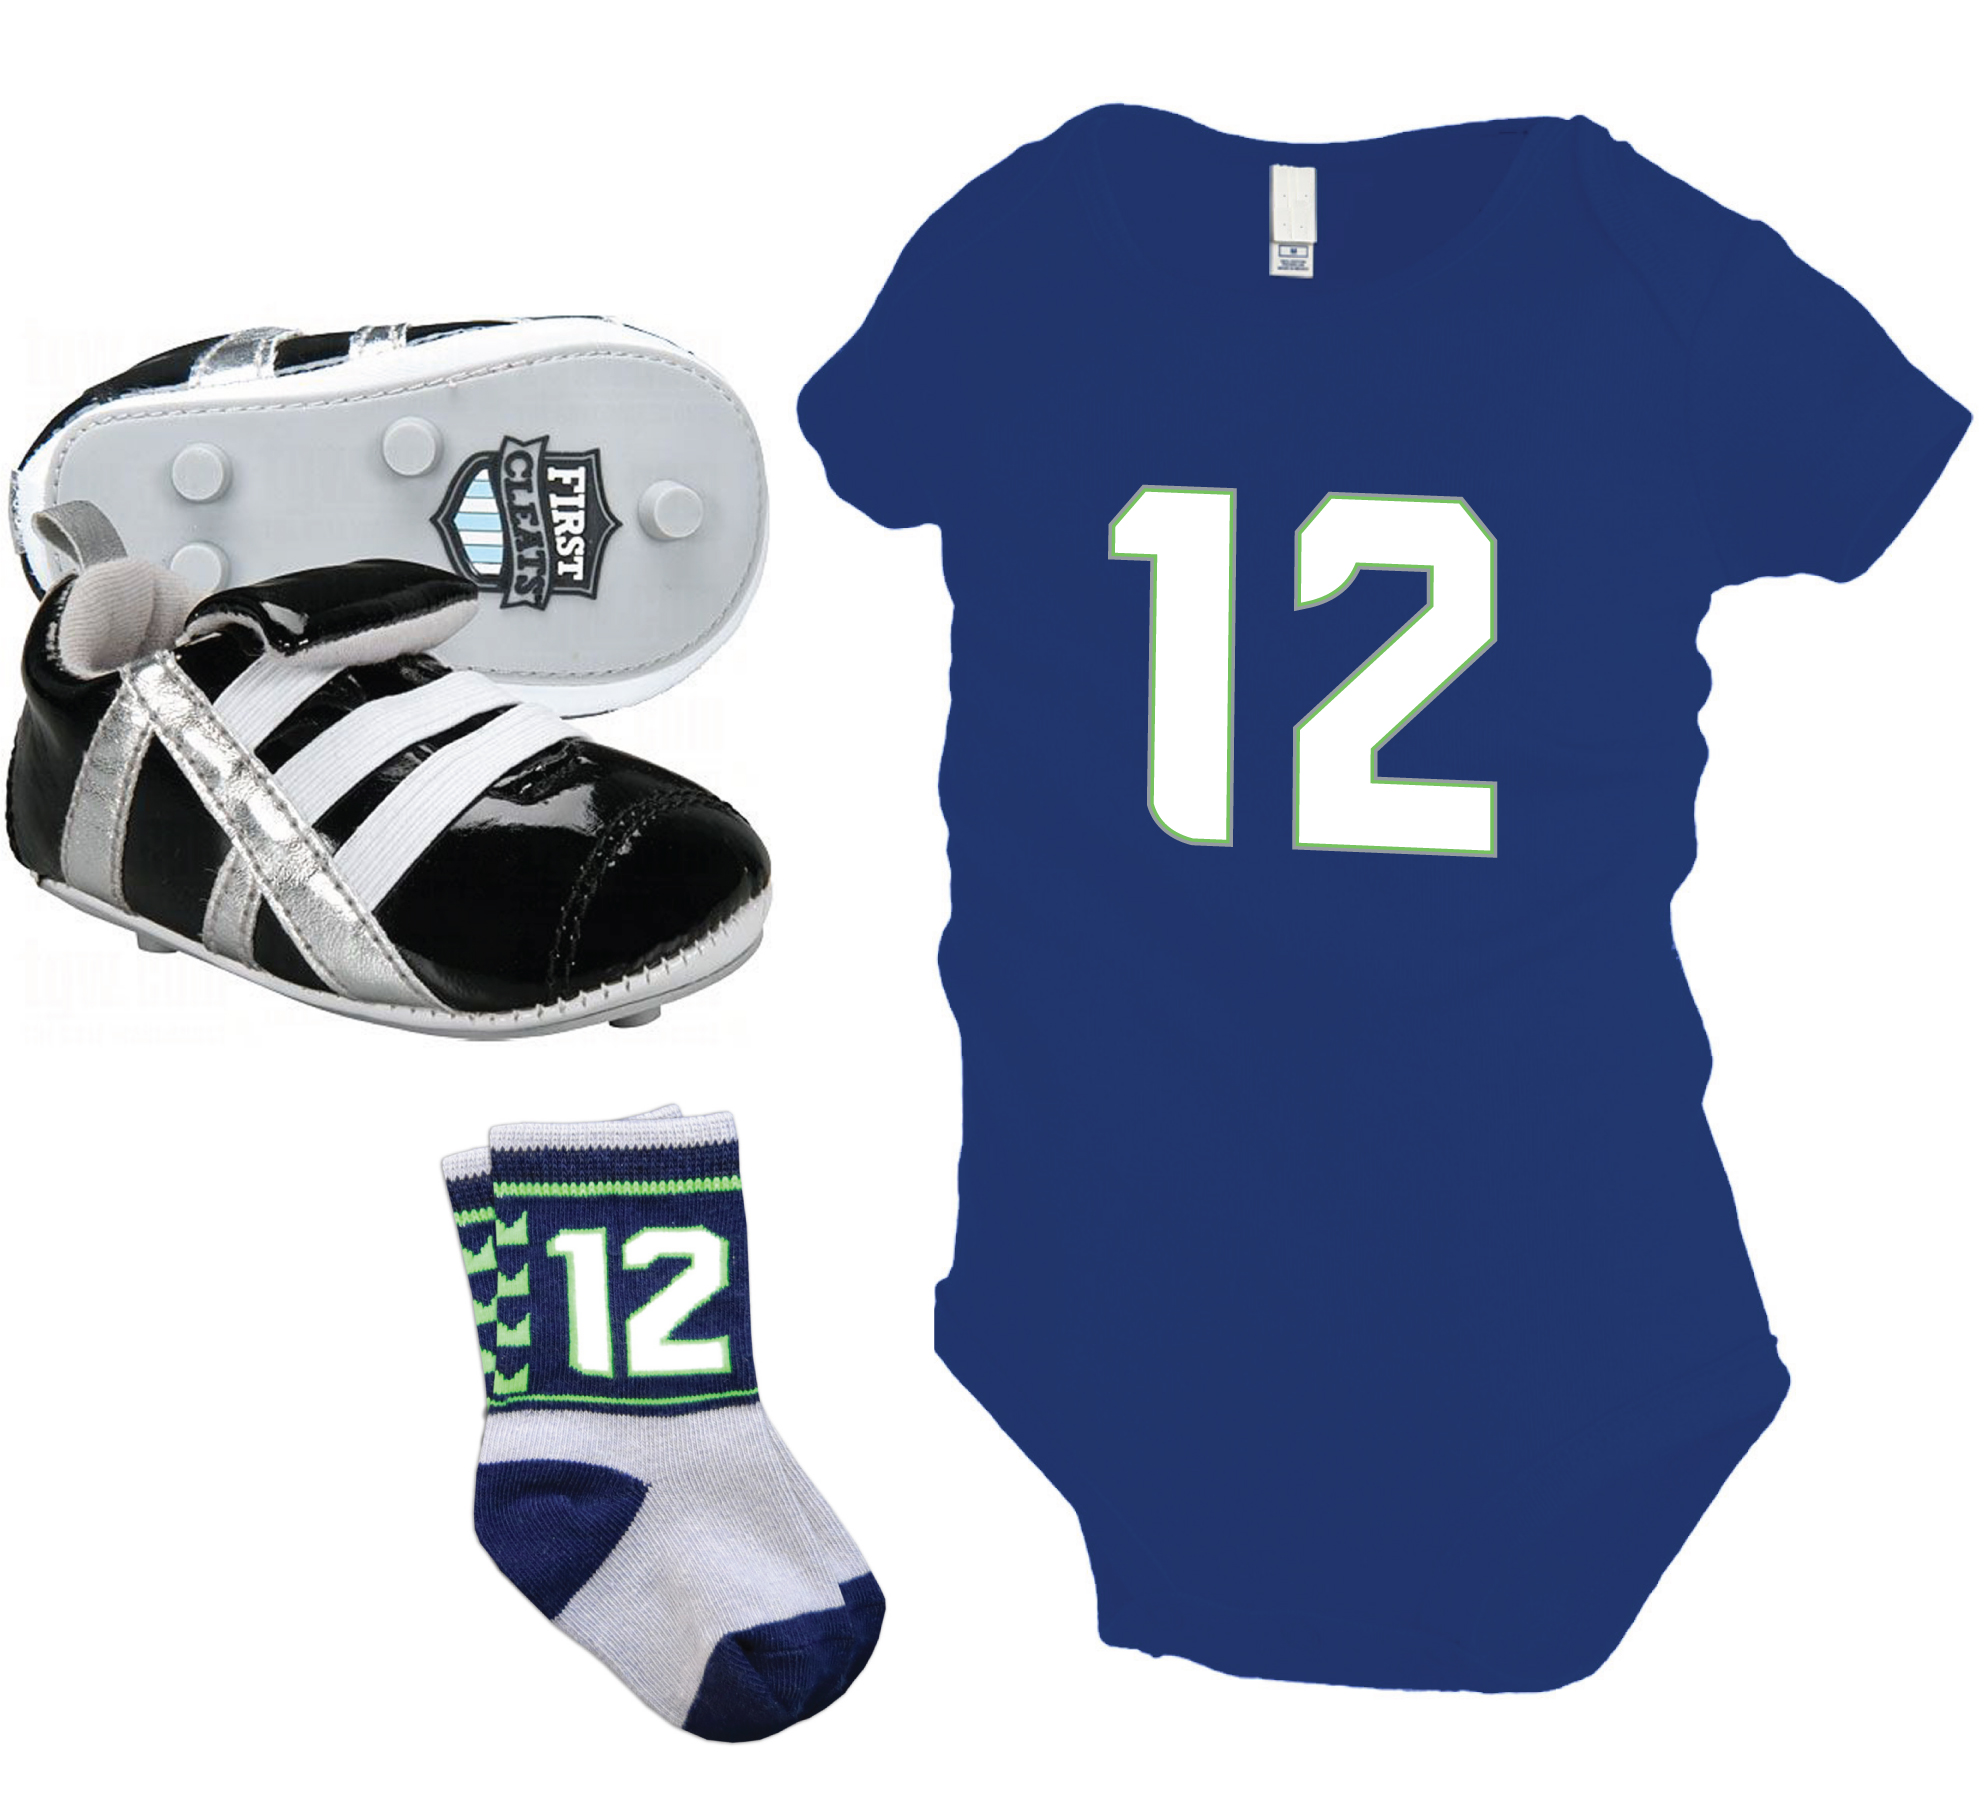 Seattle Seahawks 12th baby gift set including #12 onesie, socks and football cleats by Code Four Atheltics